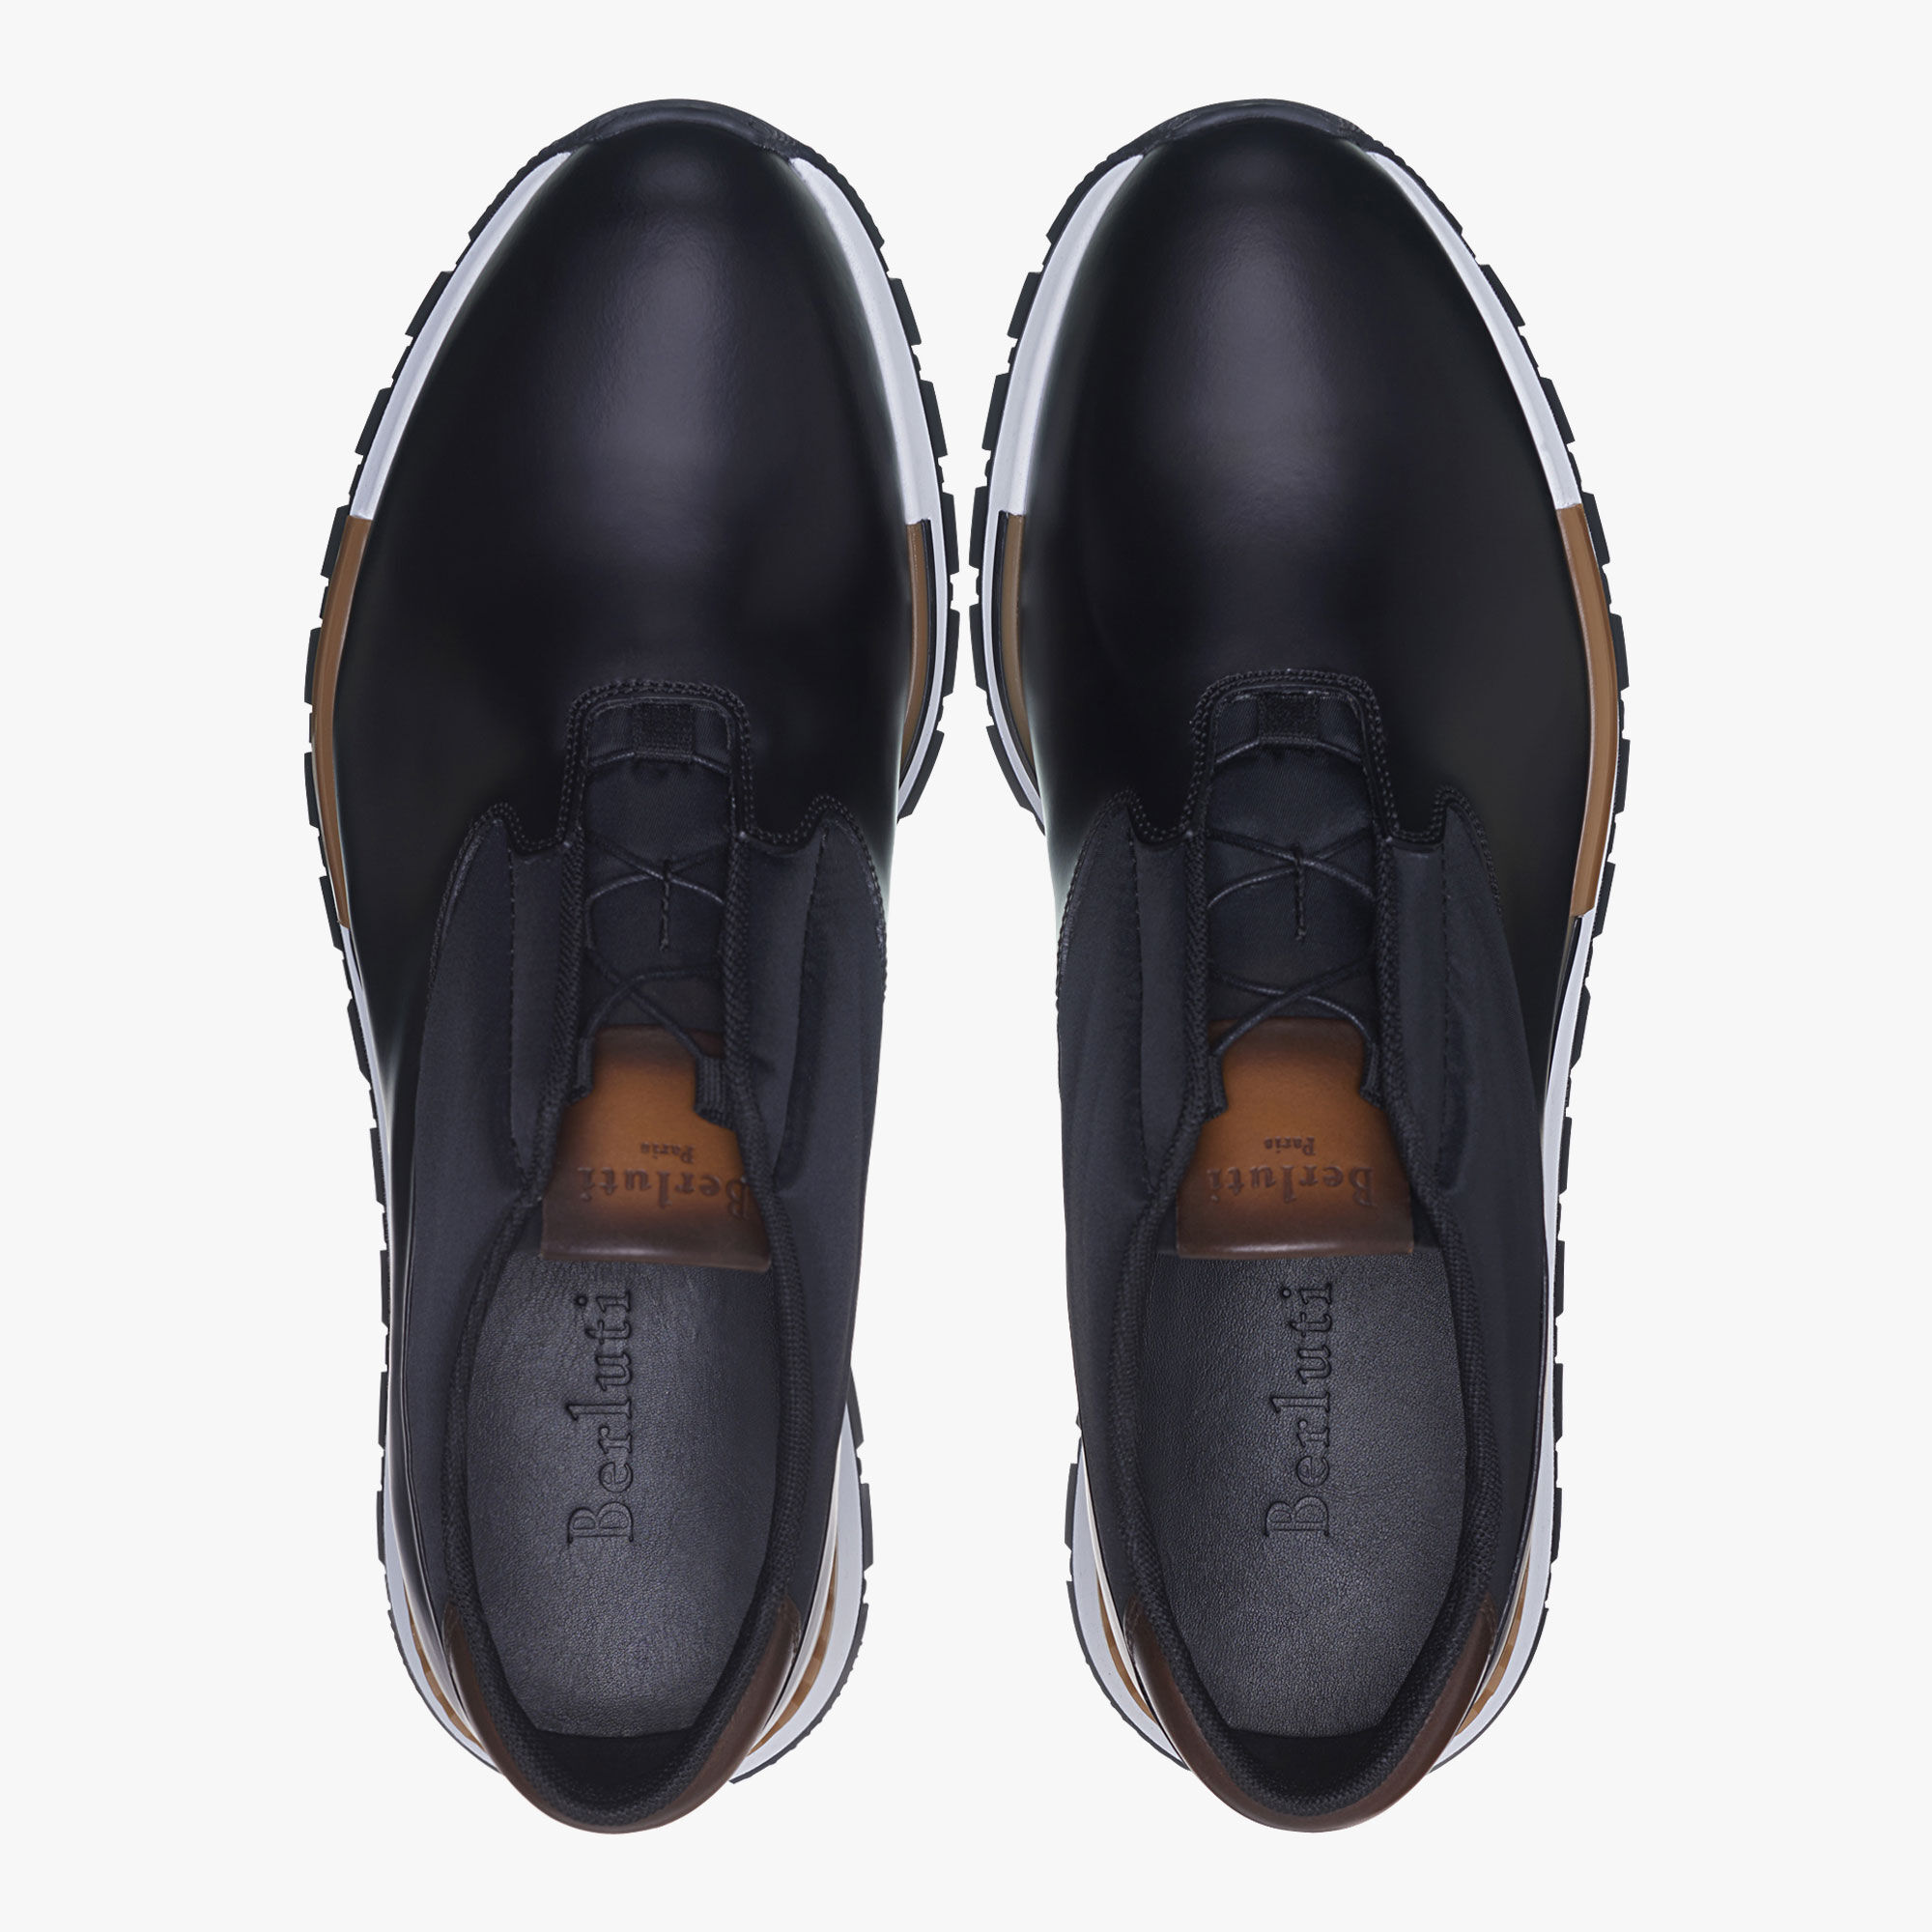 cheap sale low price fee shipping for nice cheap price Berluti Fast Track Torino Suede and Leather Sneakers wiOdm